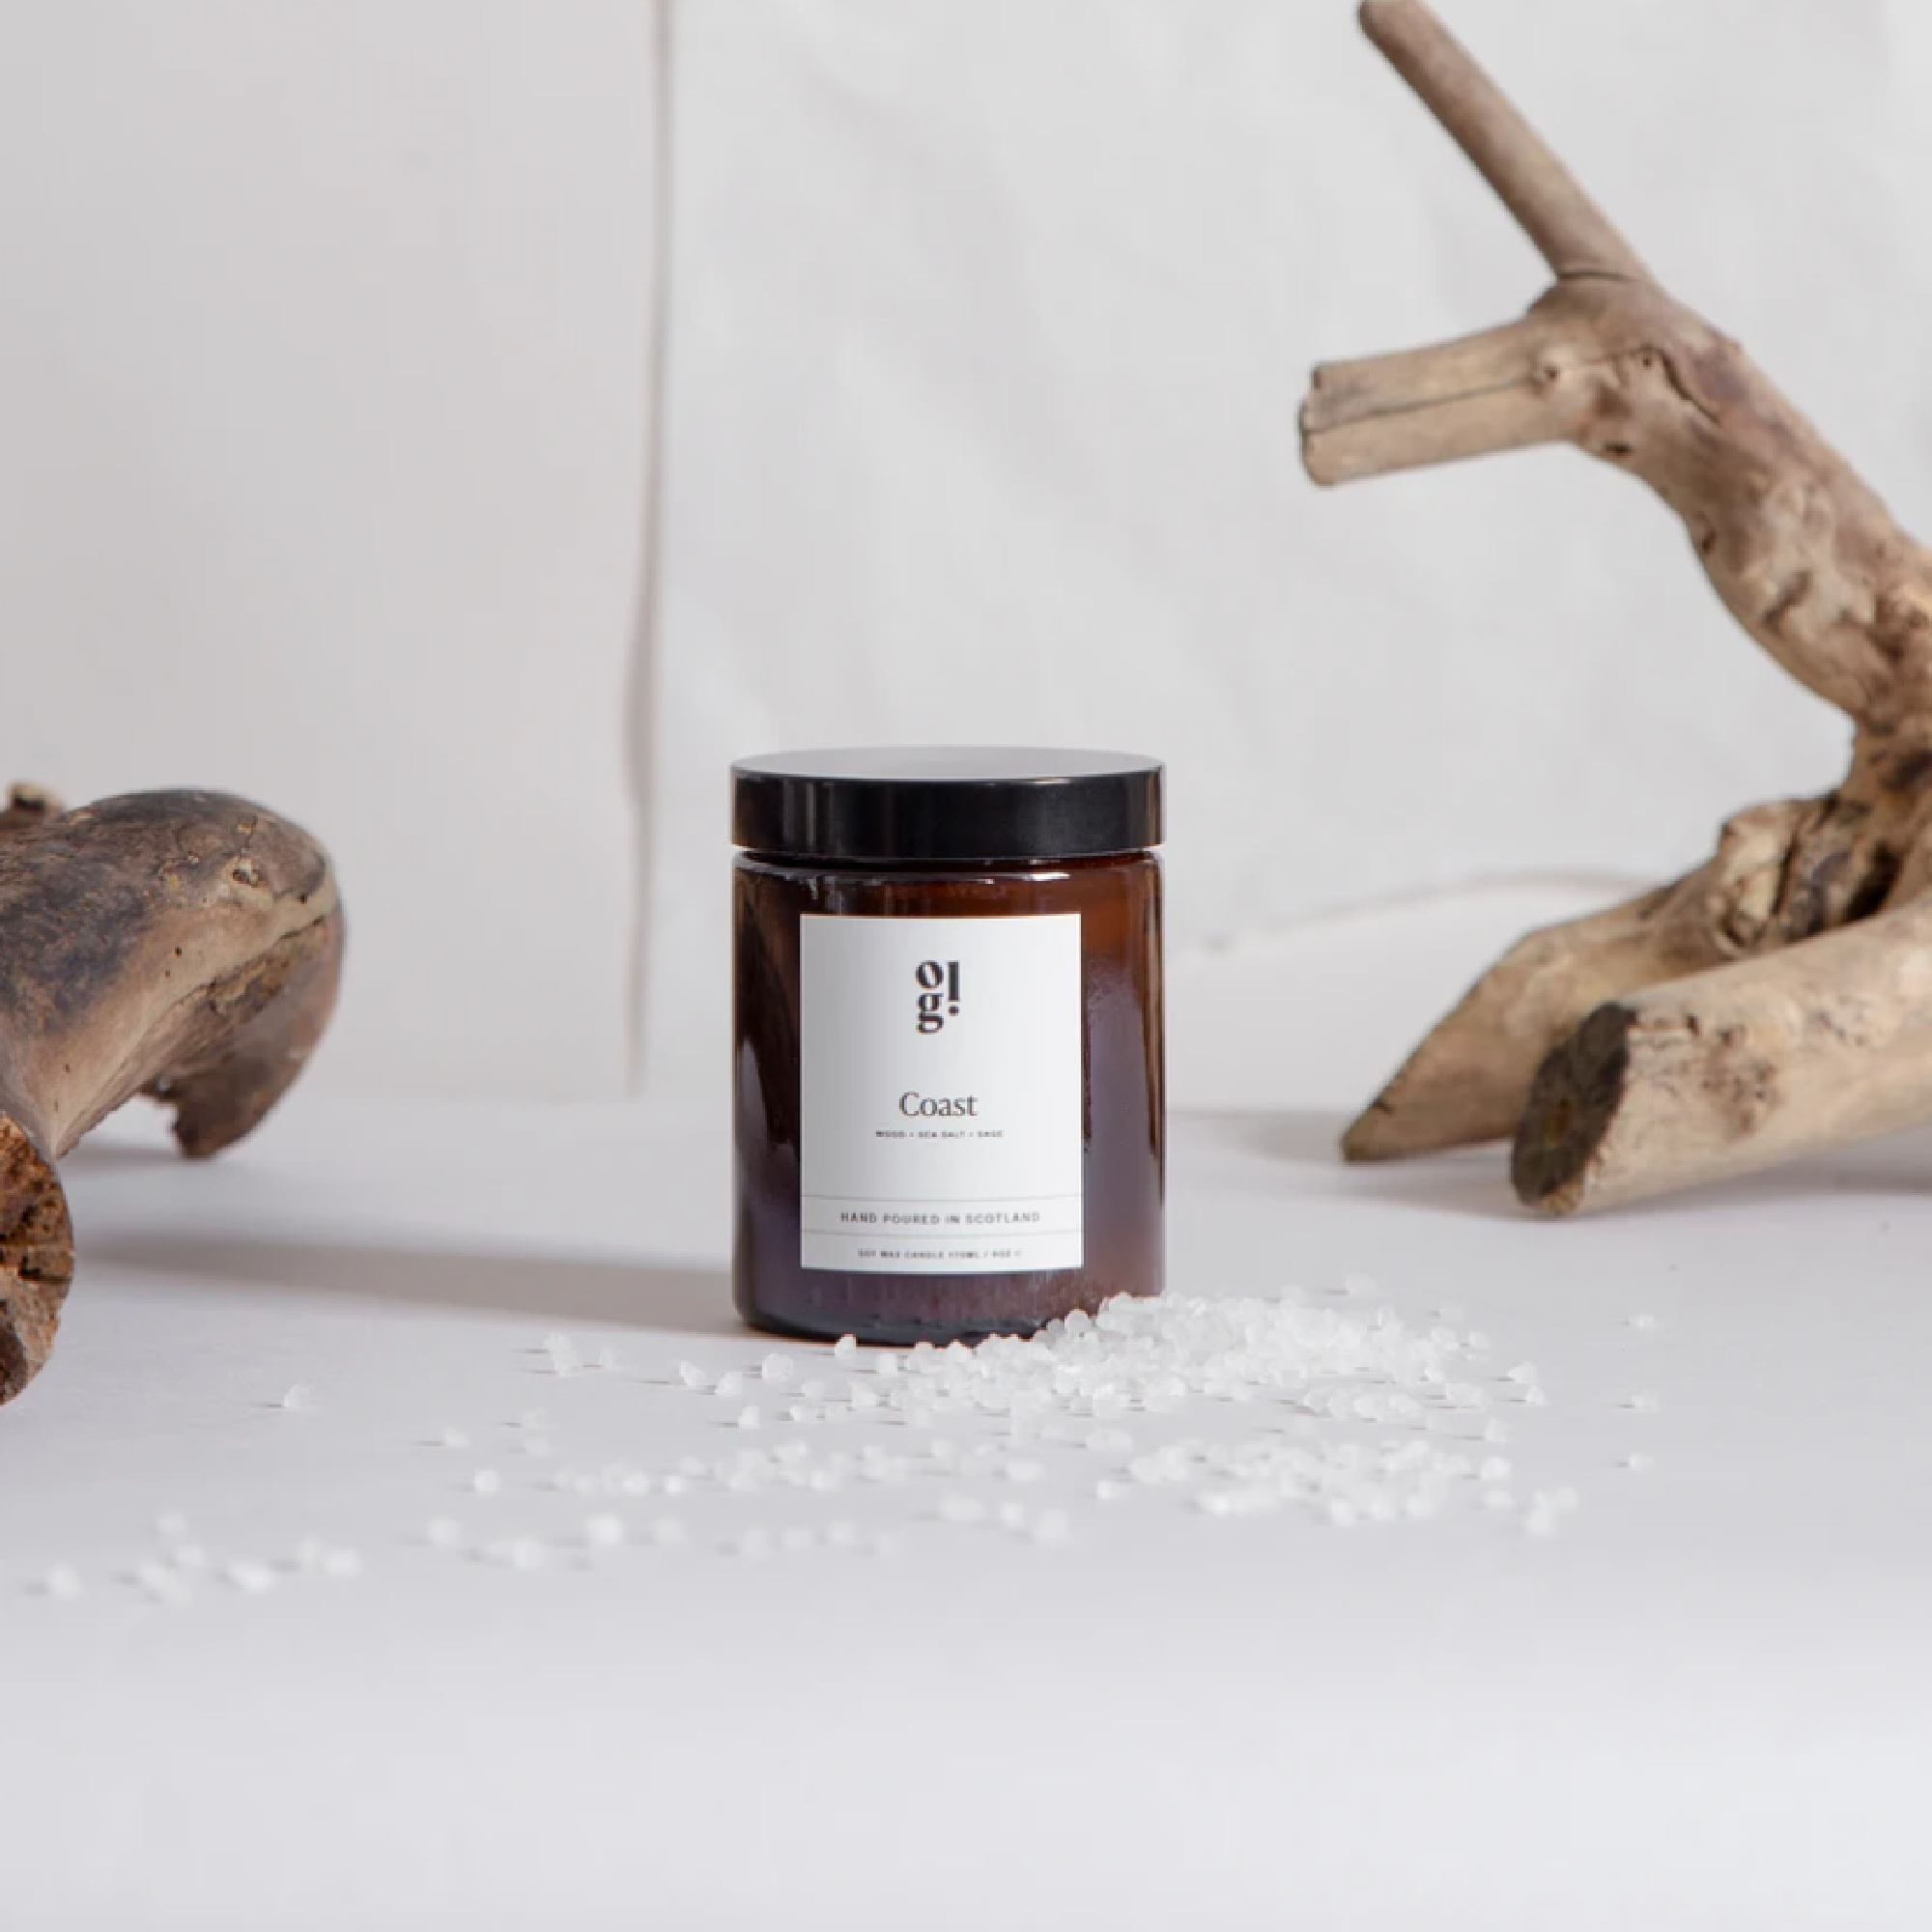 Our Lovely Goods Soy Wax Candles